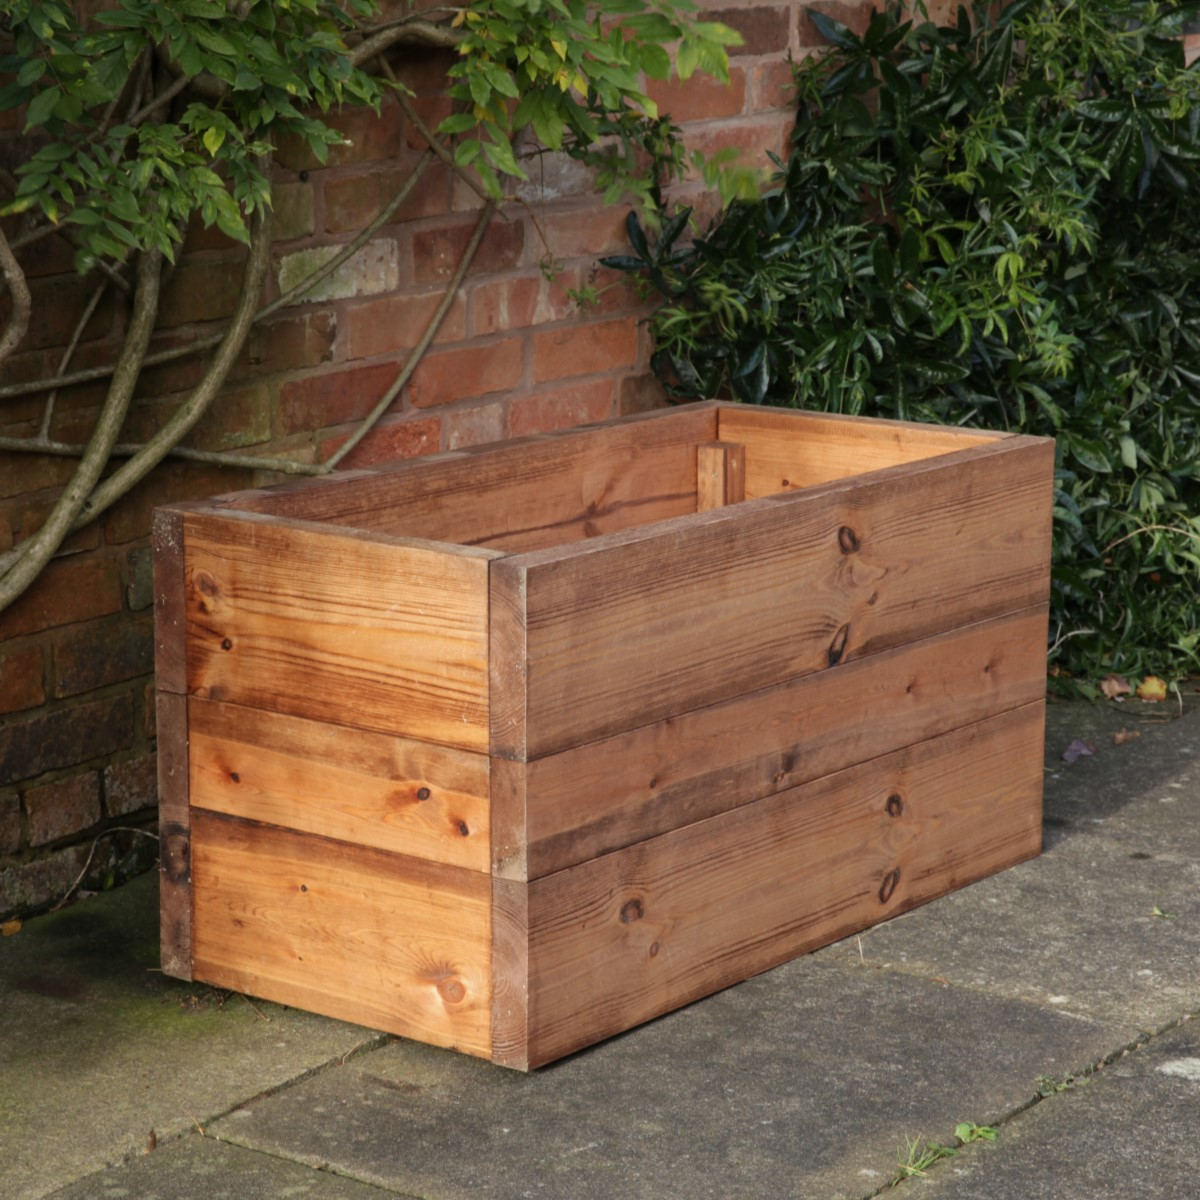 A chunky rectangular wooden planter box on a patio